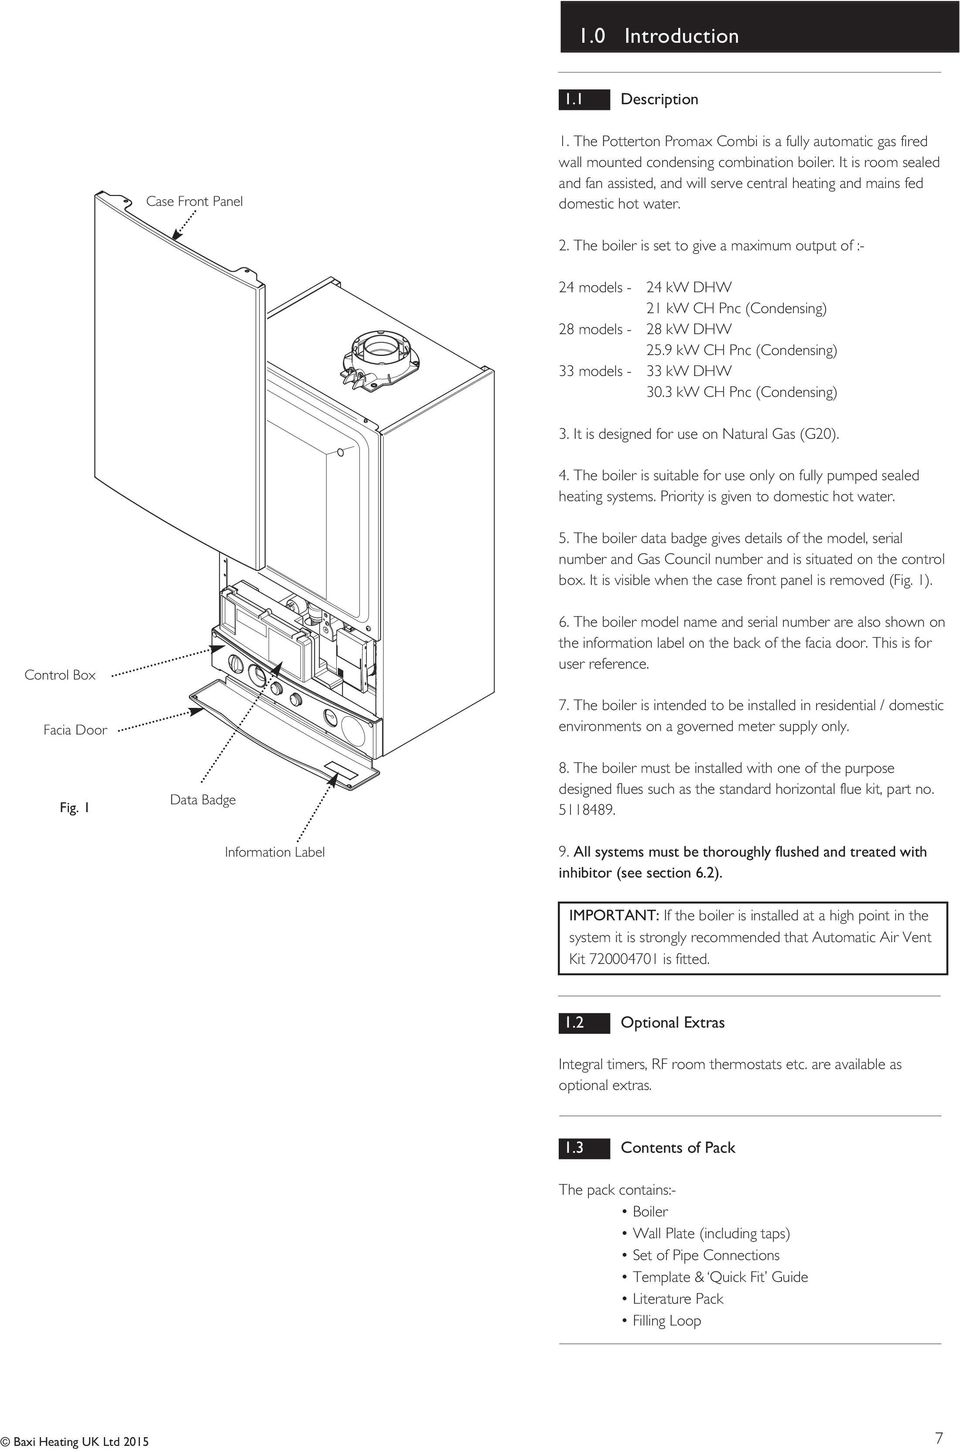 Installation and Service Manual  Promax Combi Condensing